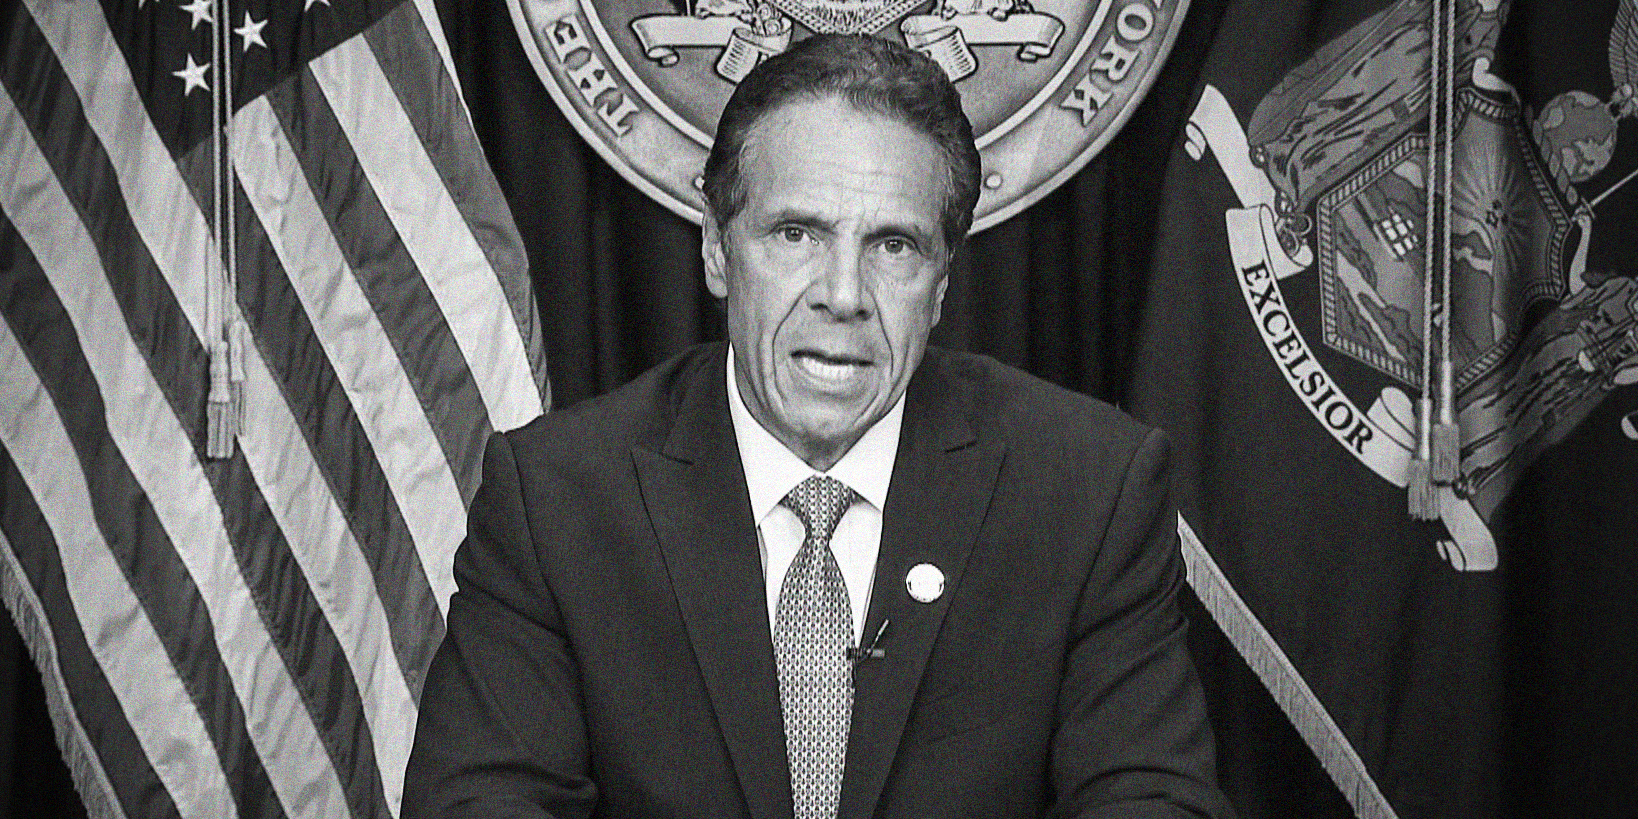 Andrew Cuomo's resignation is just the start. More heads need to roll.